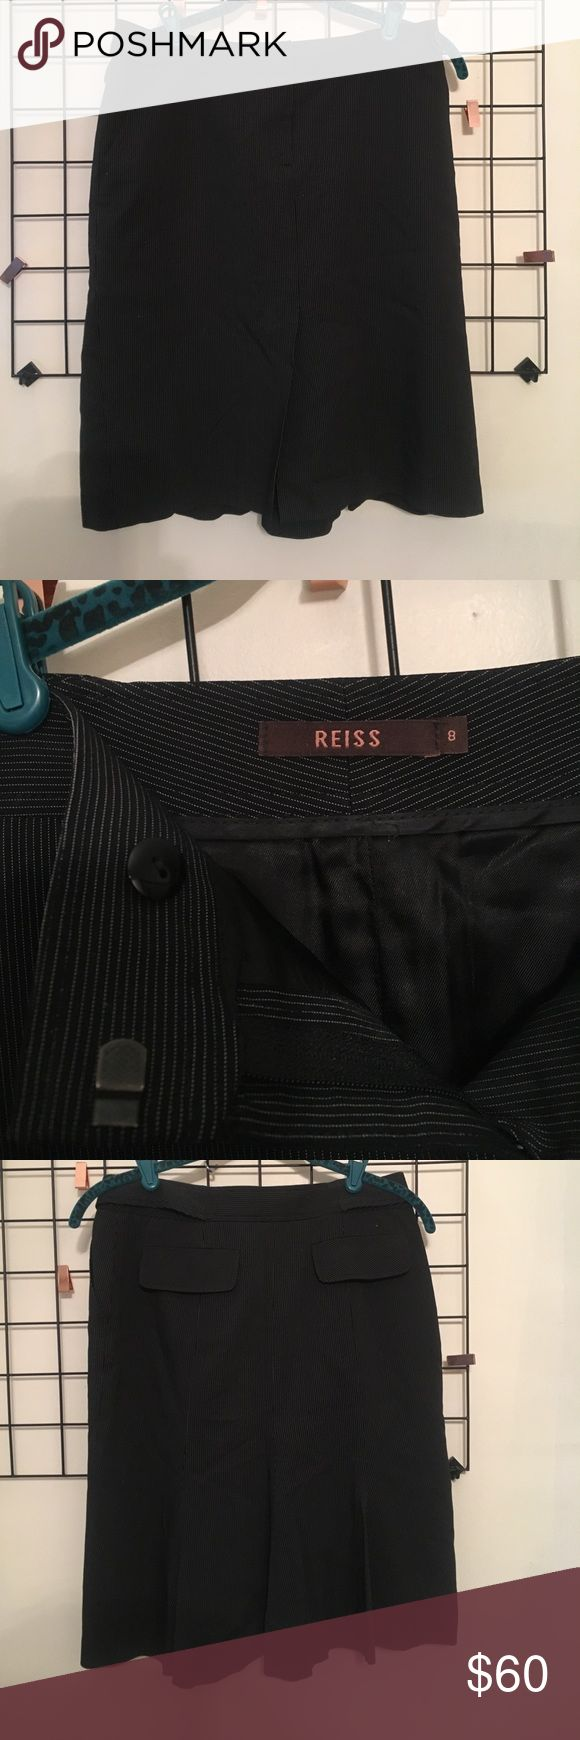 Reiss black pinstripe skirt suit size 8 Reiss black pinstripe skirt suit size 8 button sides, zipper front, pockets on front and back, flounce hem. Perfect condition! Reiss Skirts Pencil